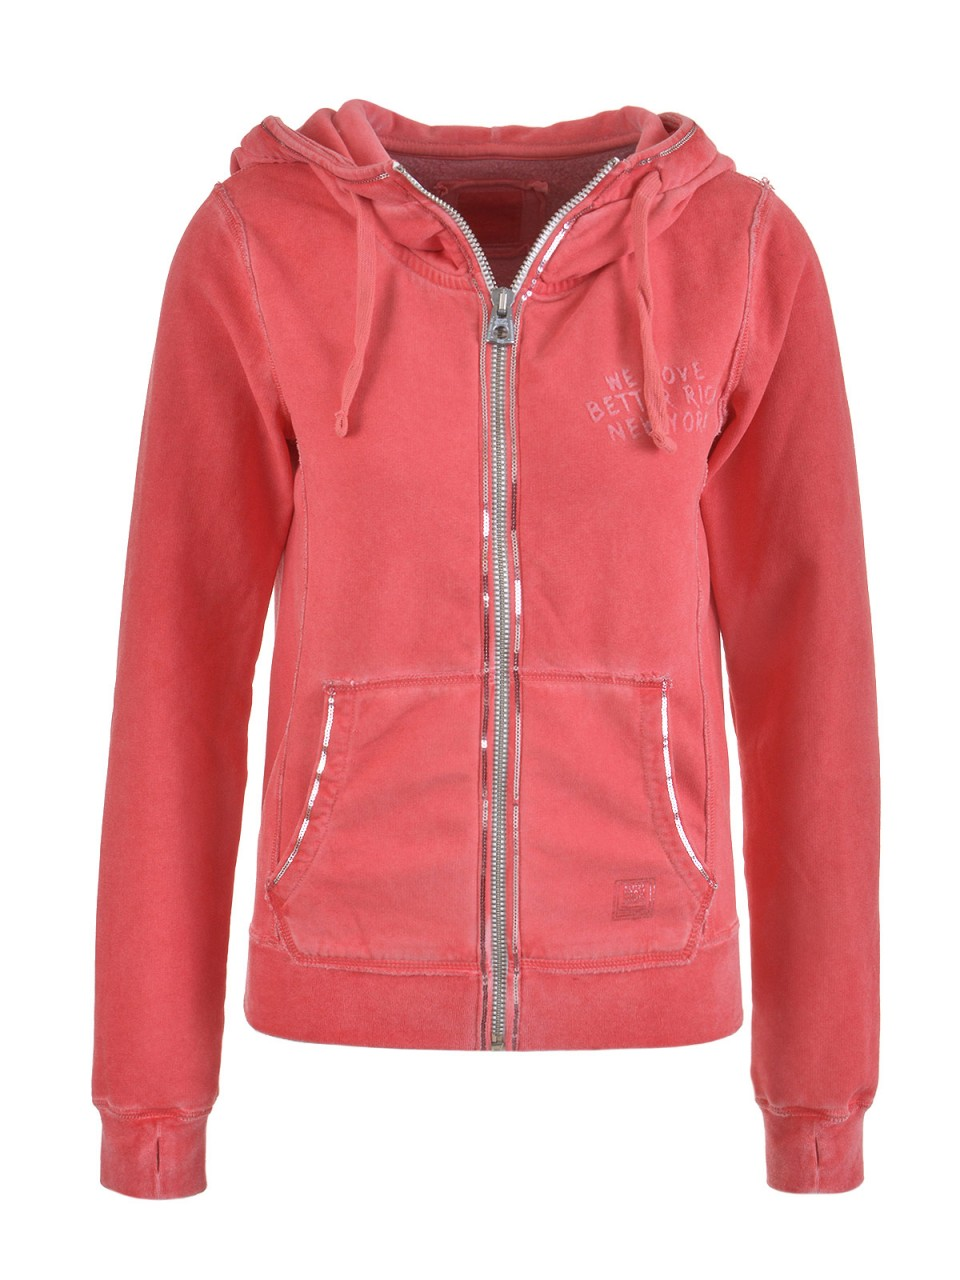 better-rich-damen-sweatjacke-rot